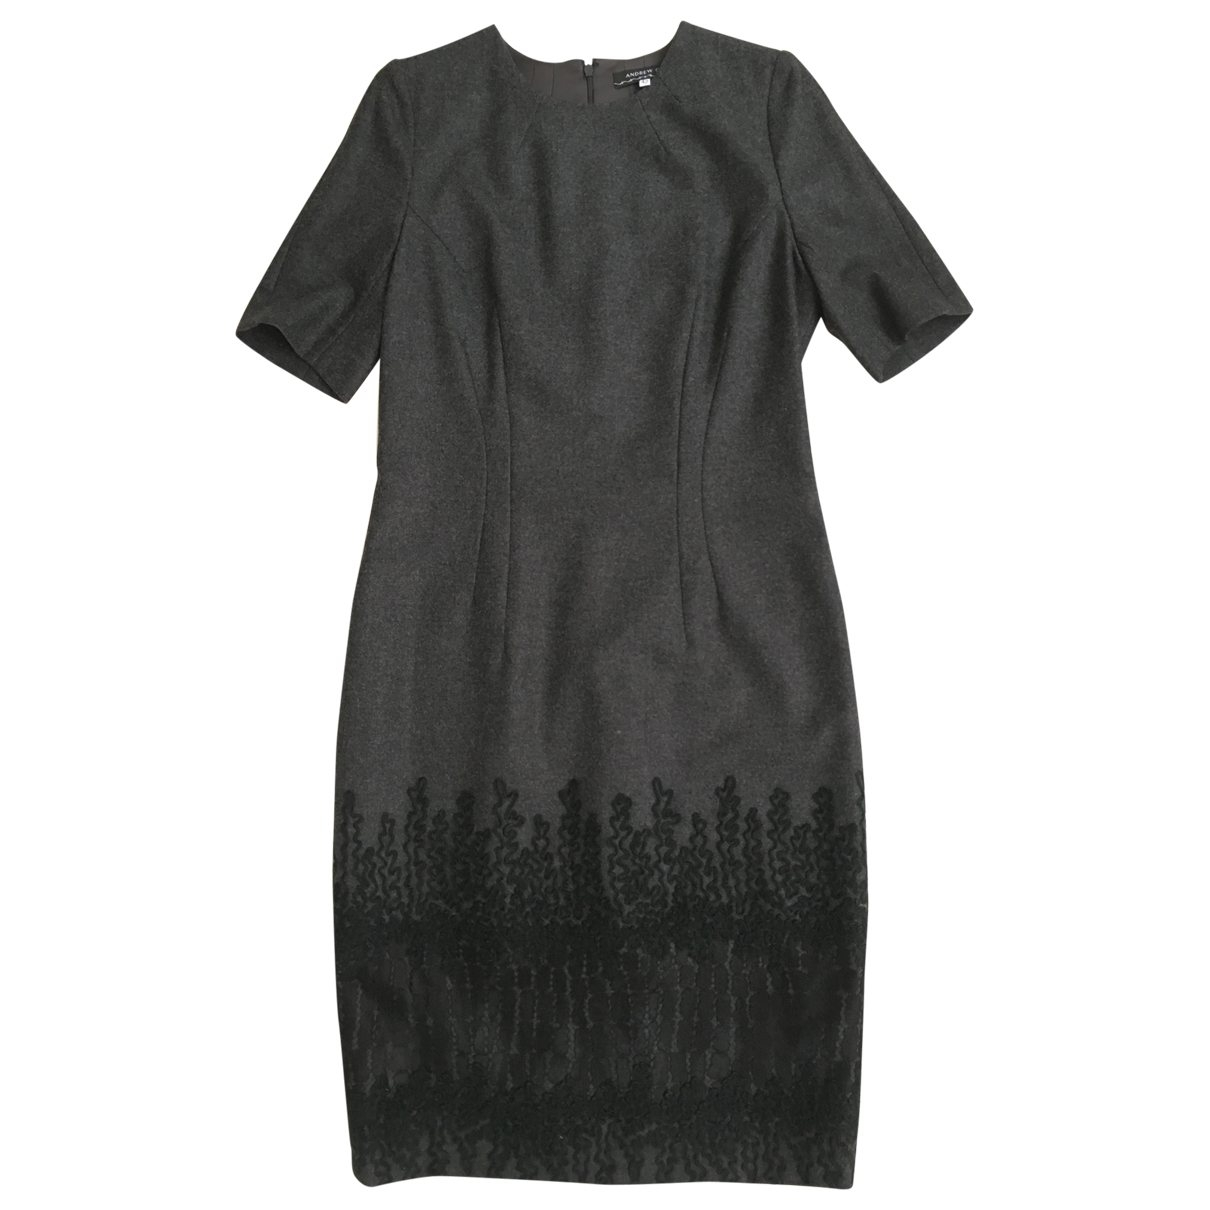 Andrew Gn \N Anthracite Wool dress for Women 38 FR